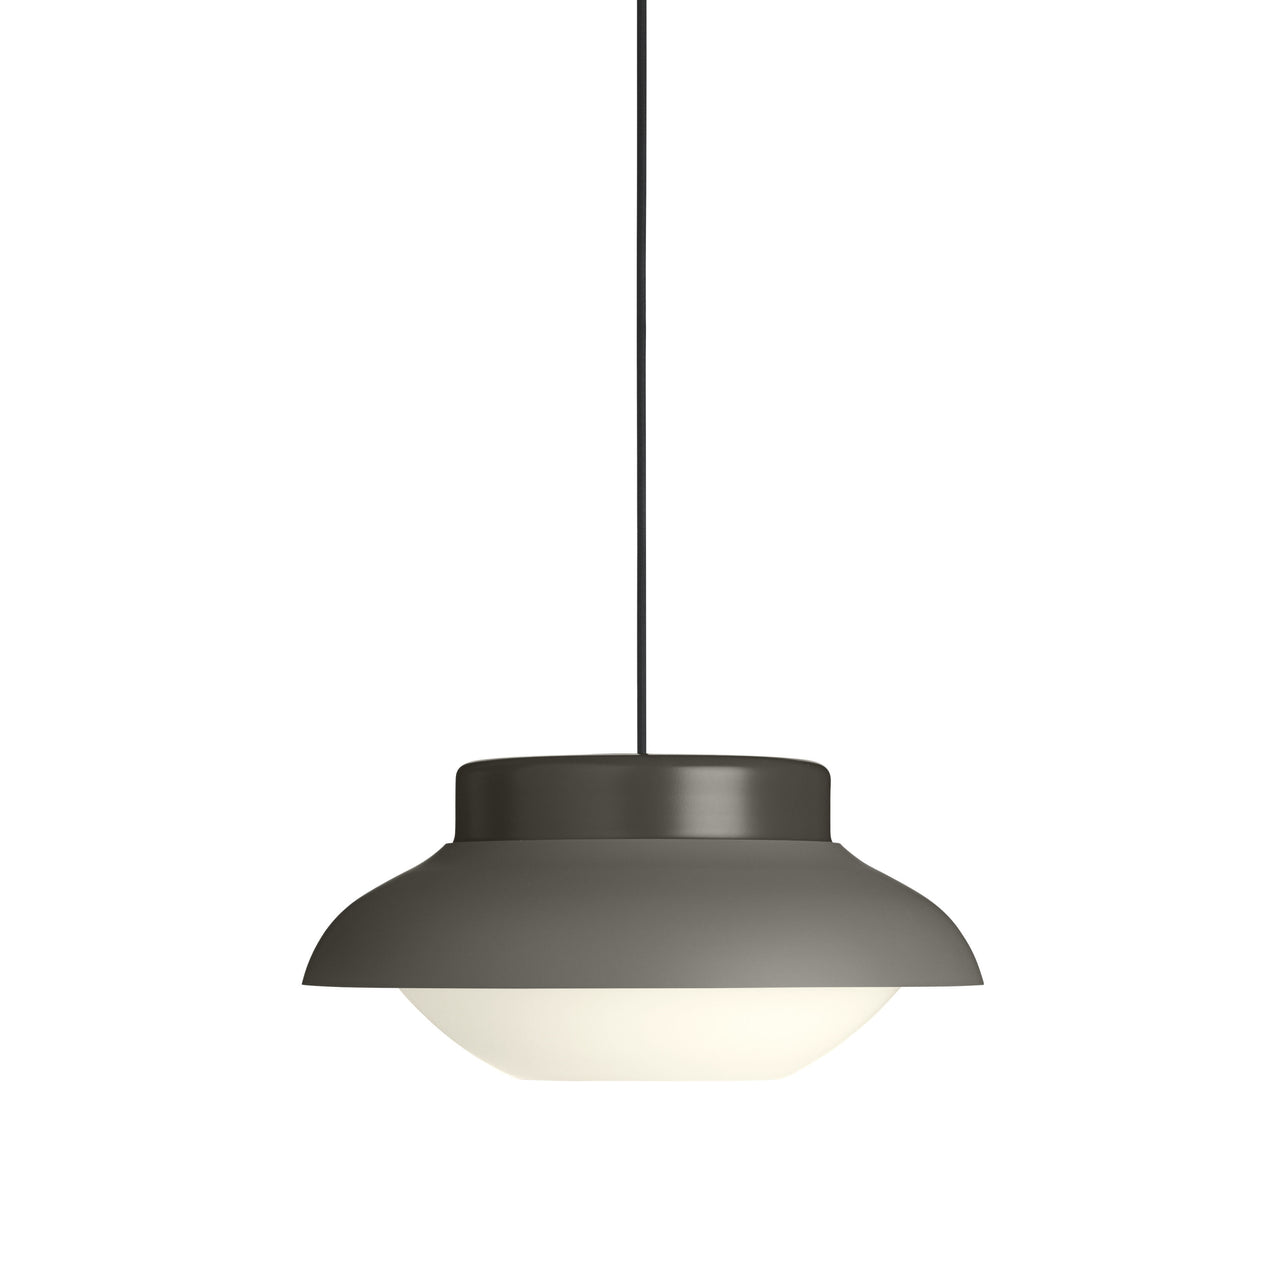 Collar Pendant Light: Large + Taupe